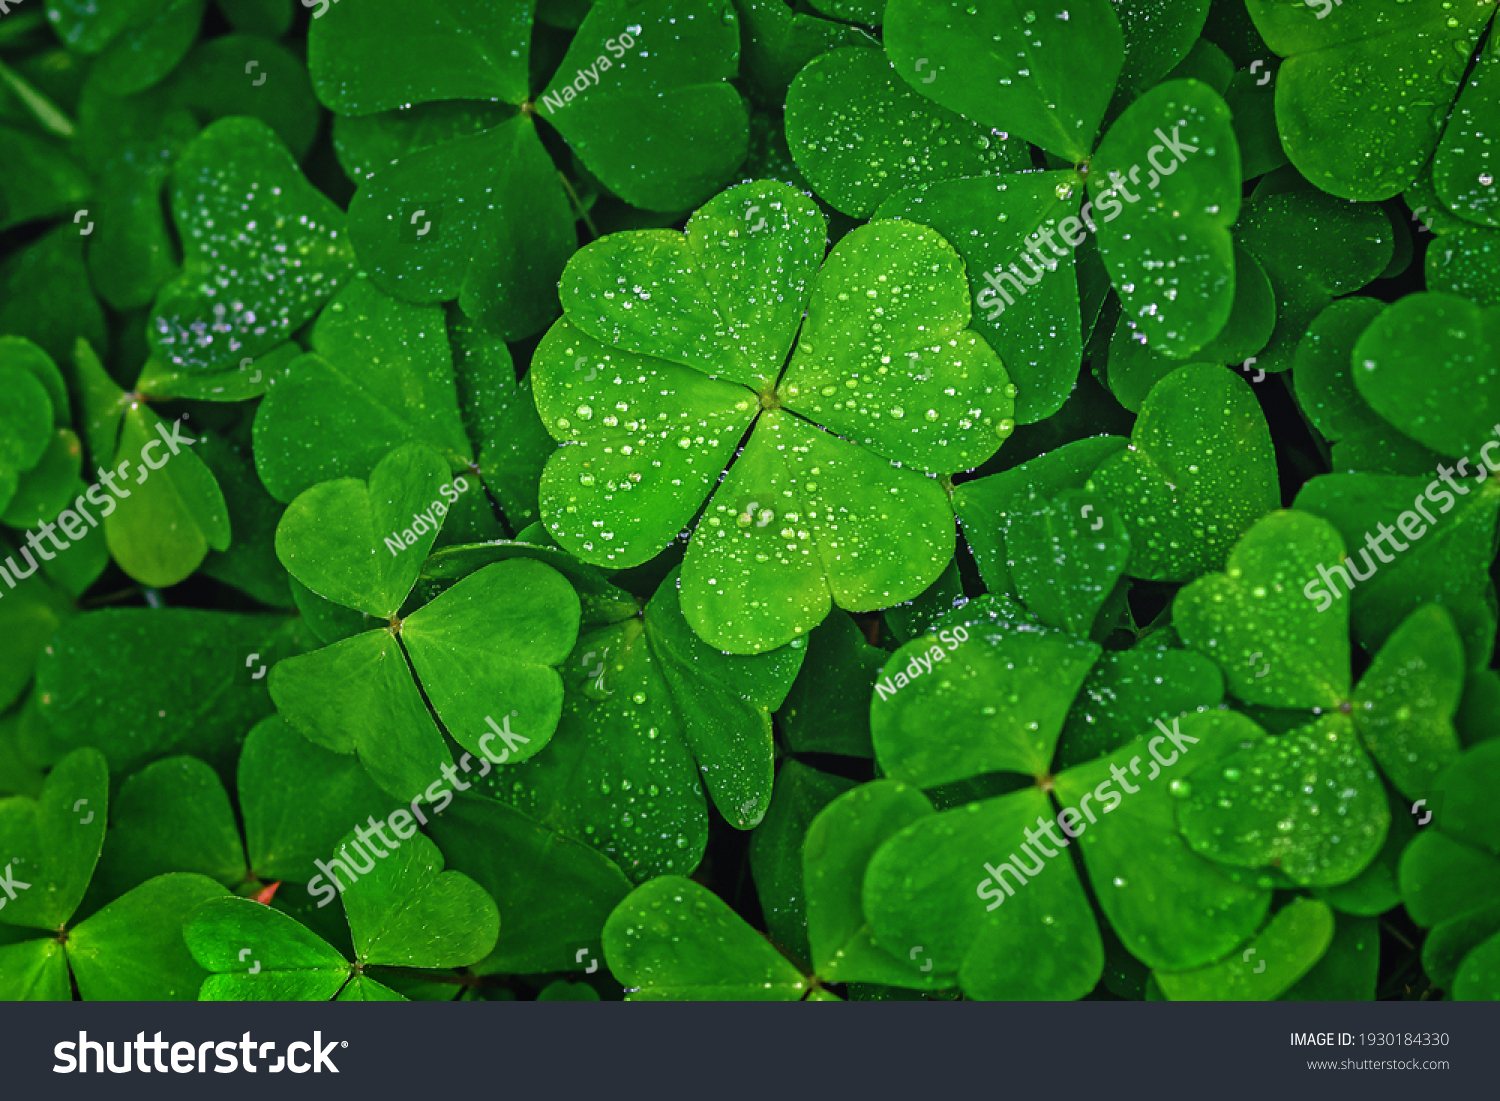 Four-leaf clover stands out against green leaves #1930184330